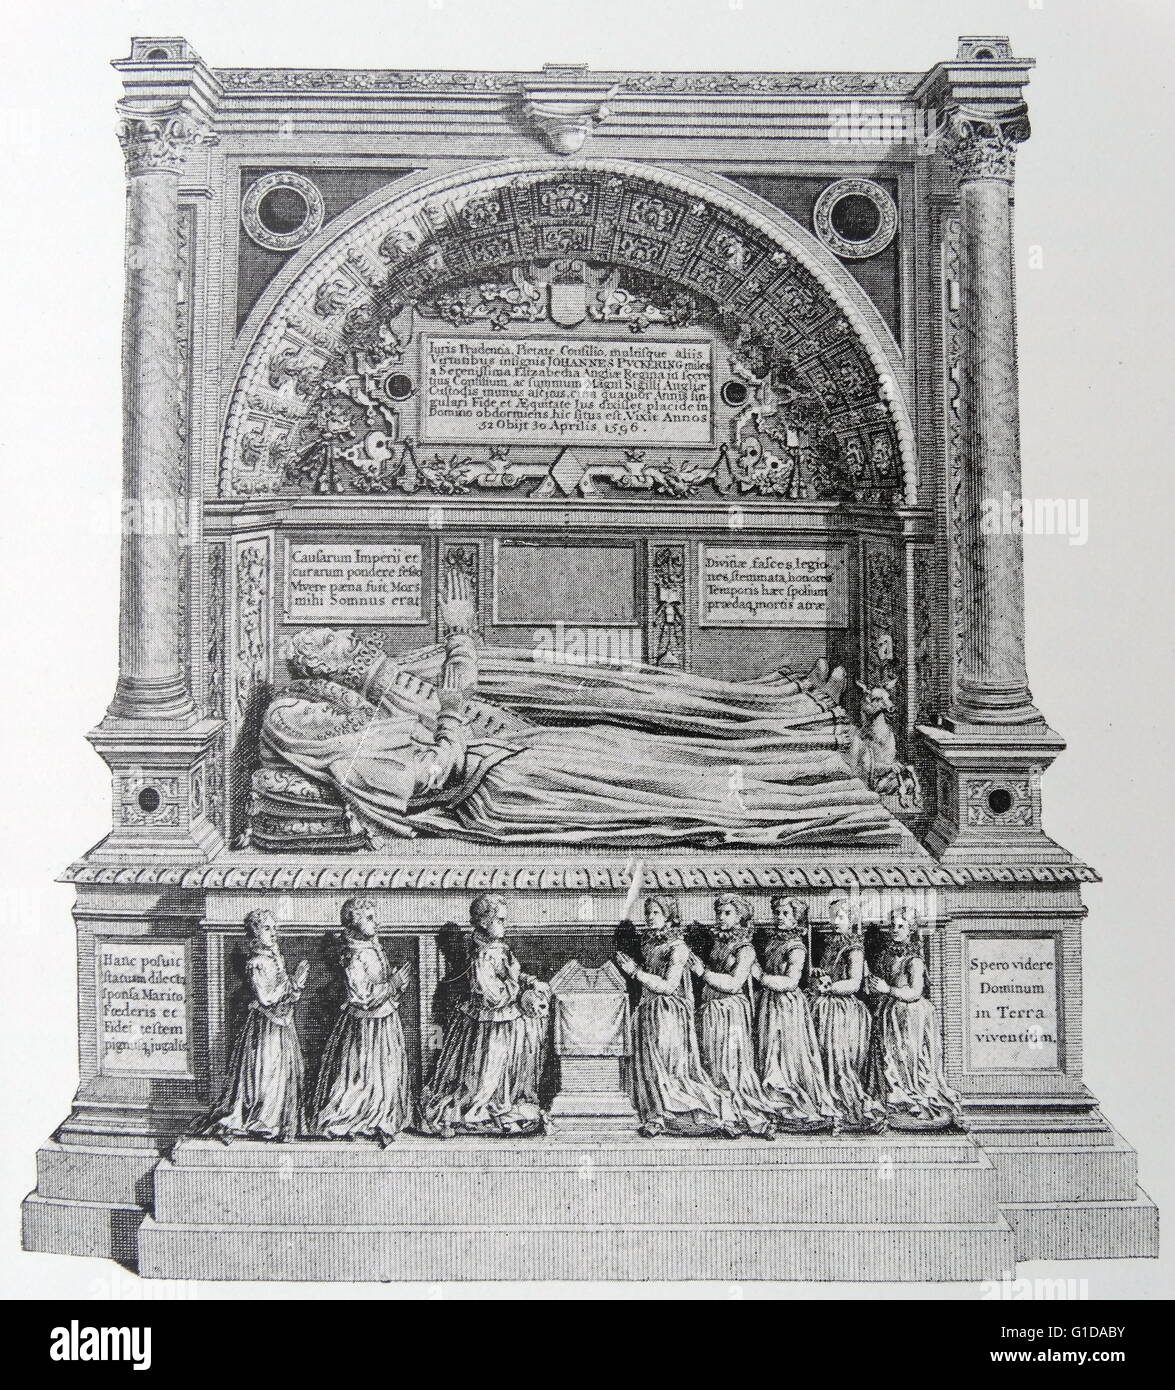 Tomb Westminster Abbey Stock Photos & Tomb Westminster